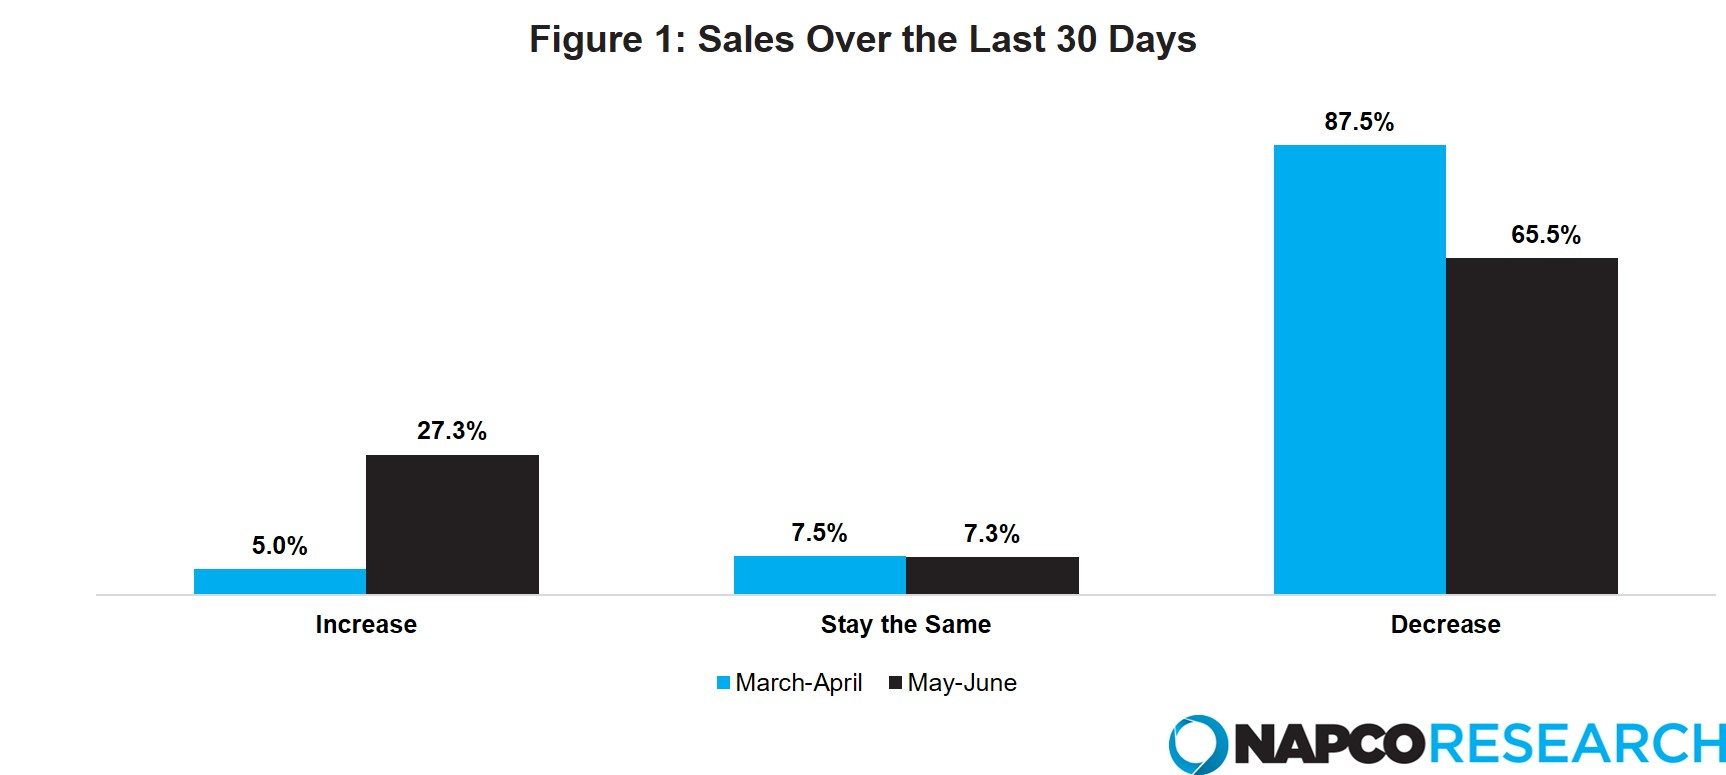 Sales figures over the last 30 days